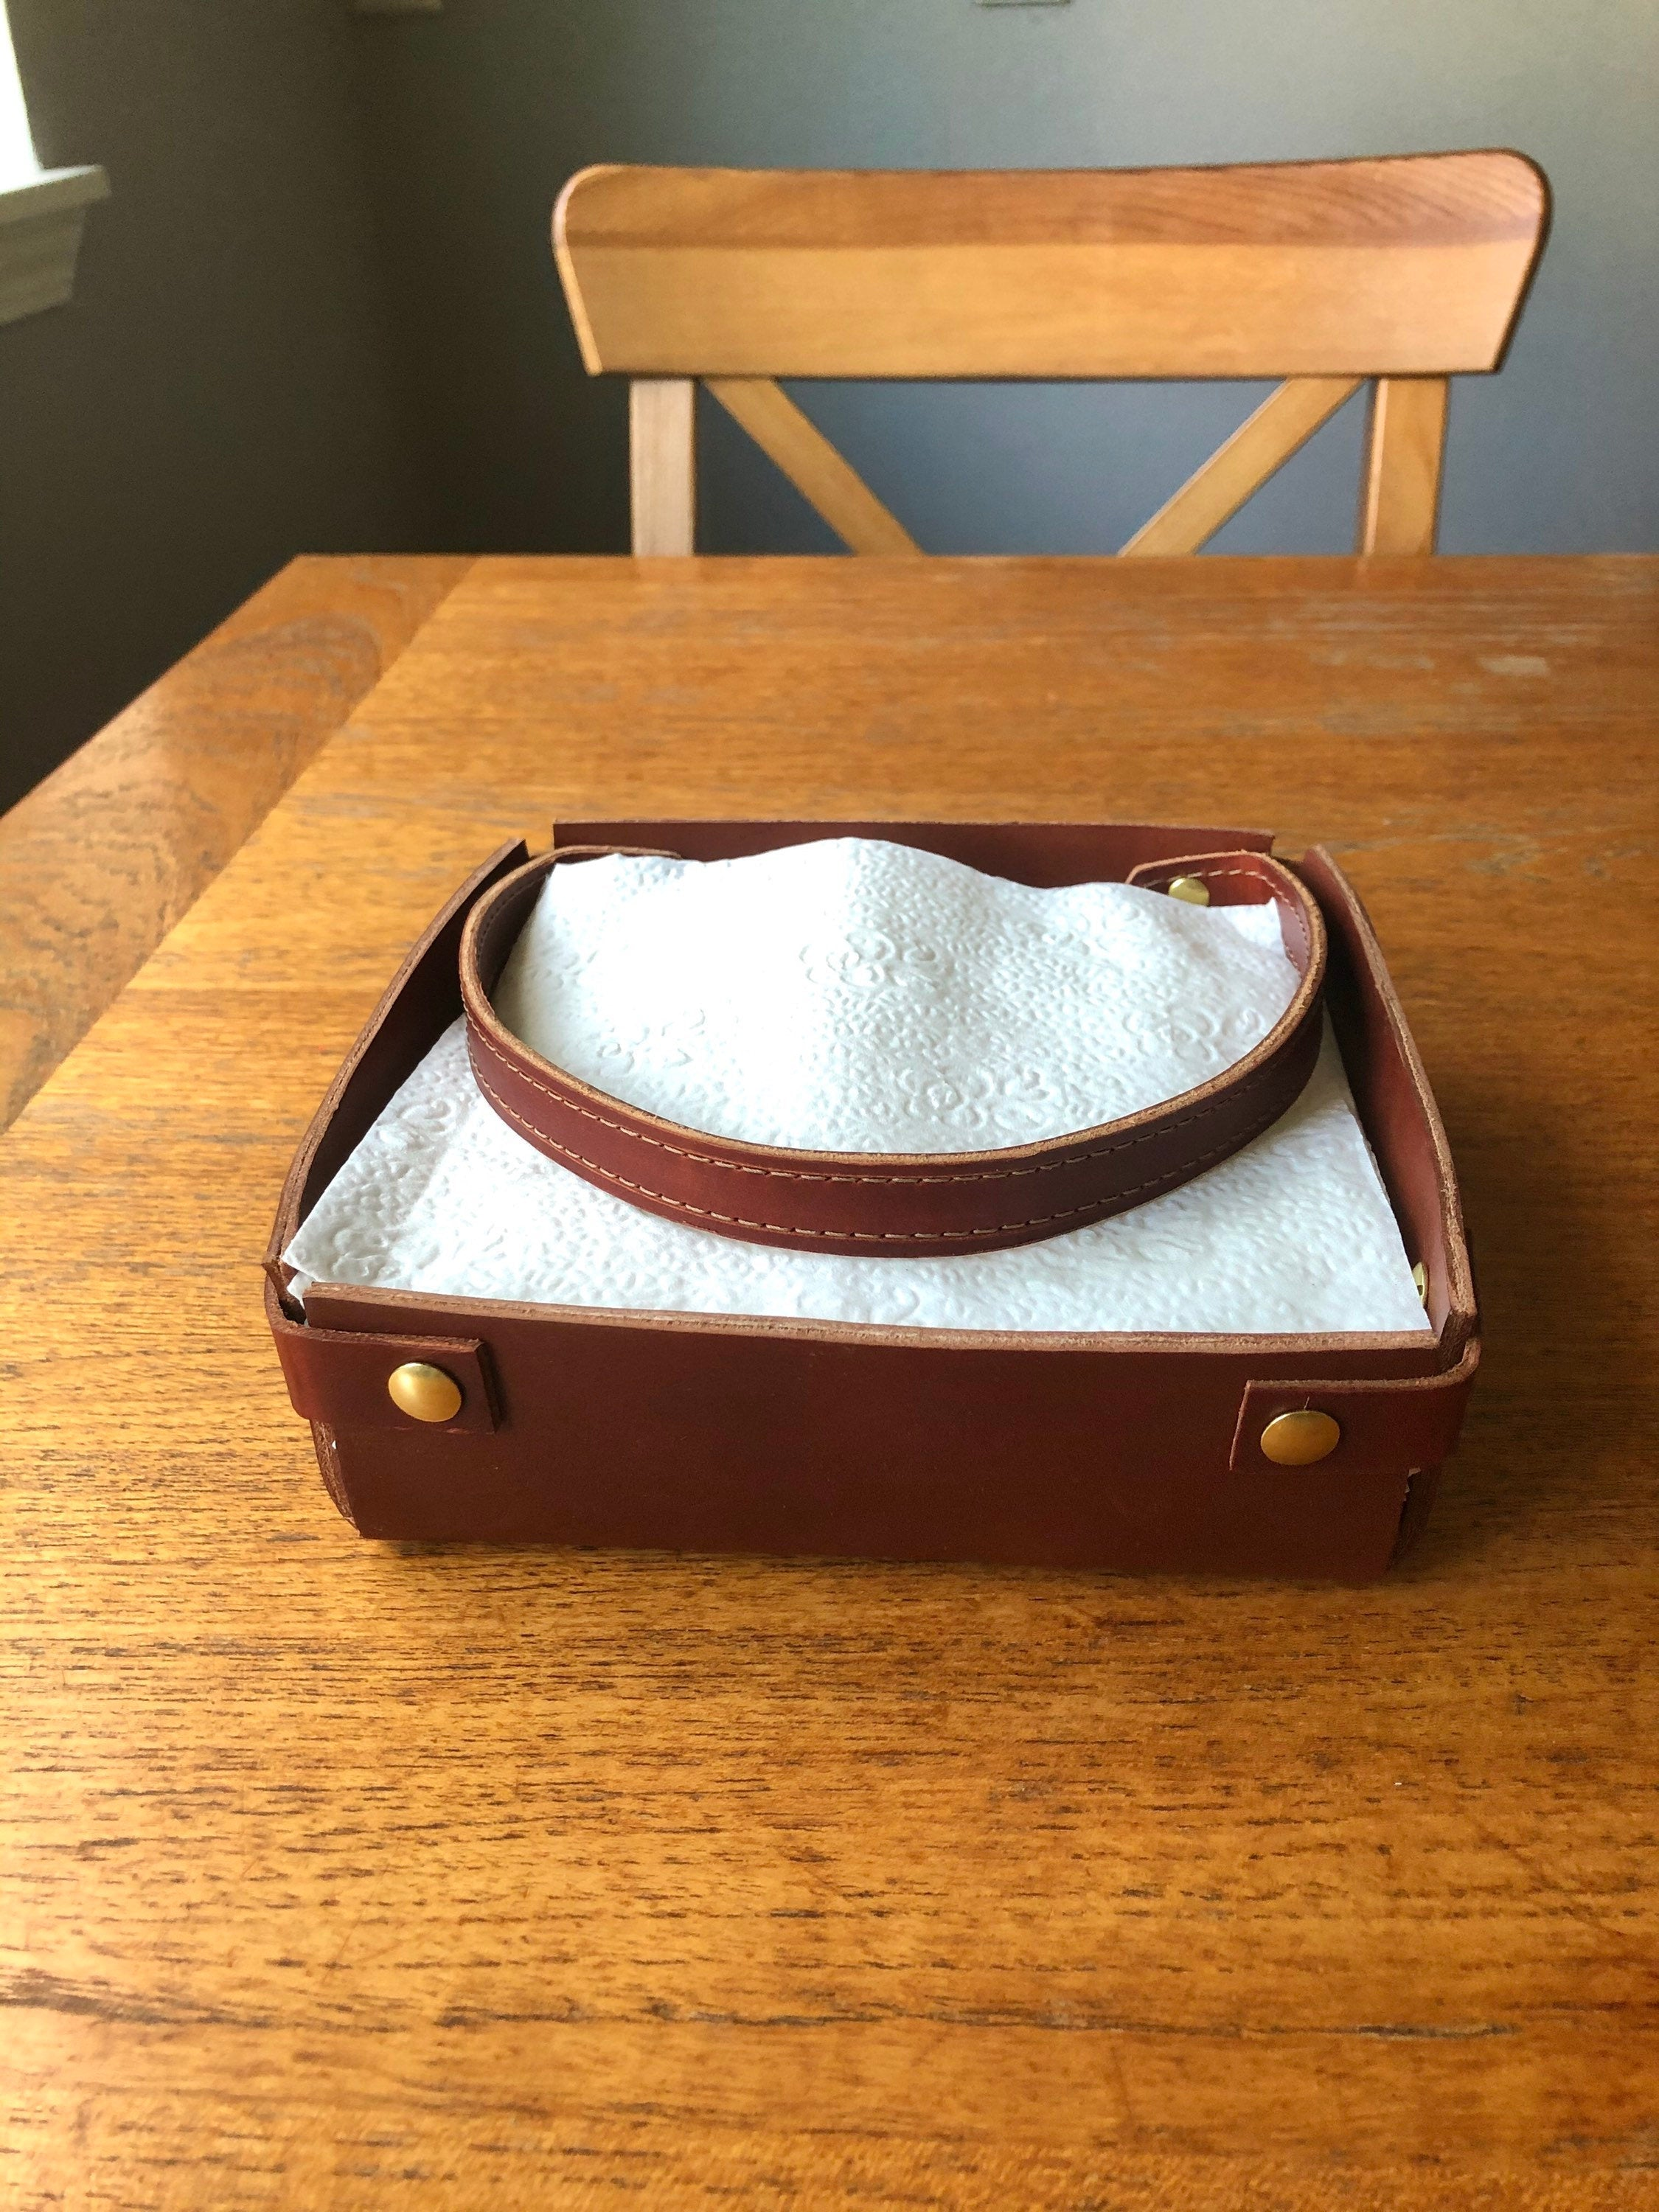 Brown leather napkin holder with brass details sits on kitchen table